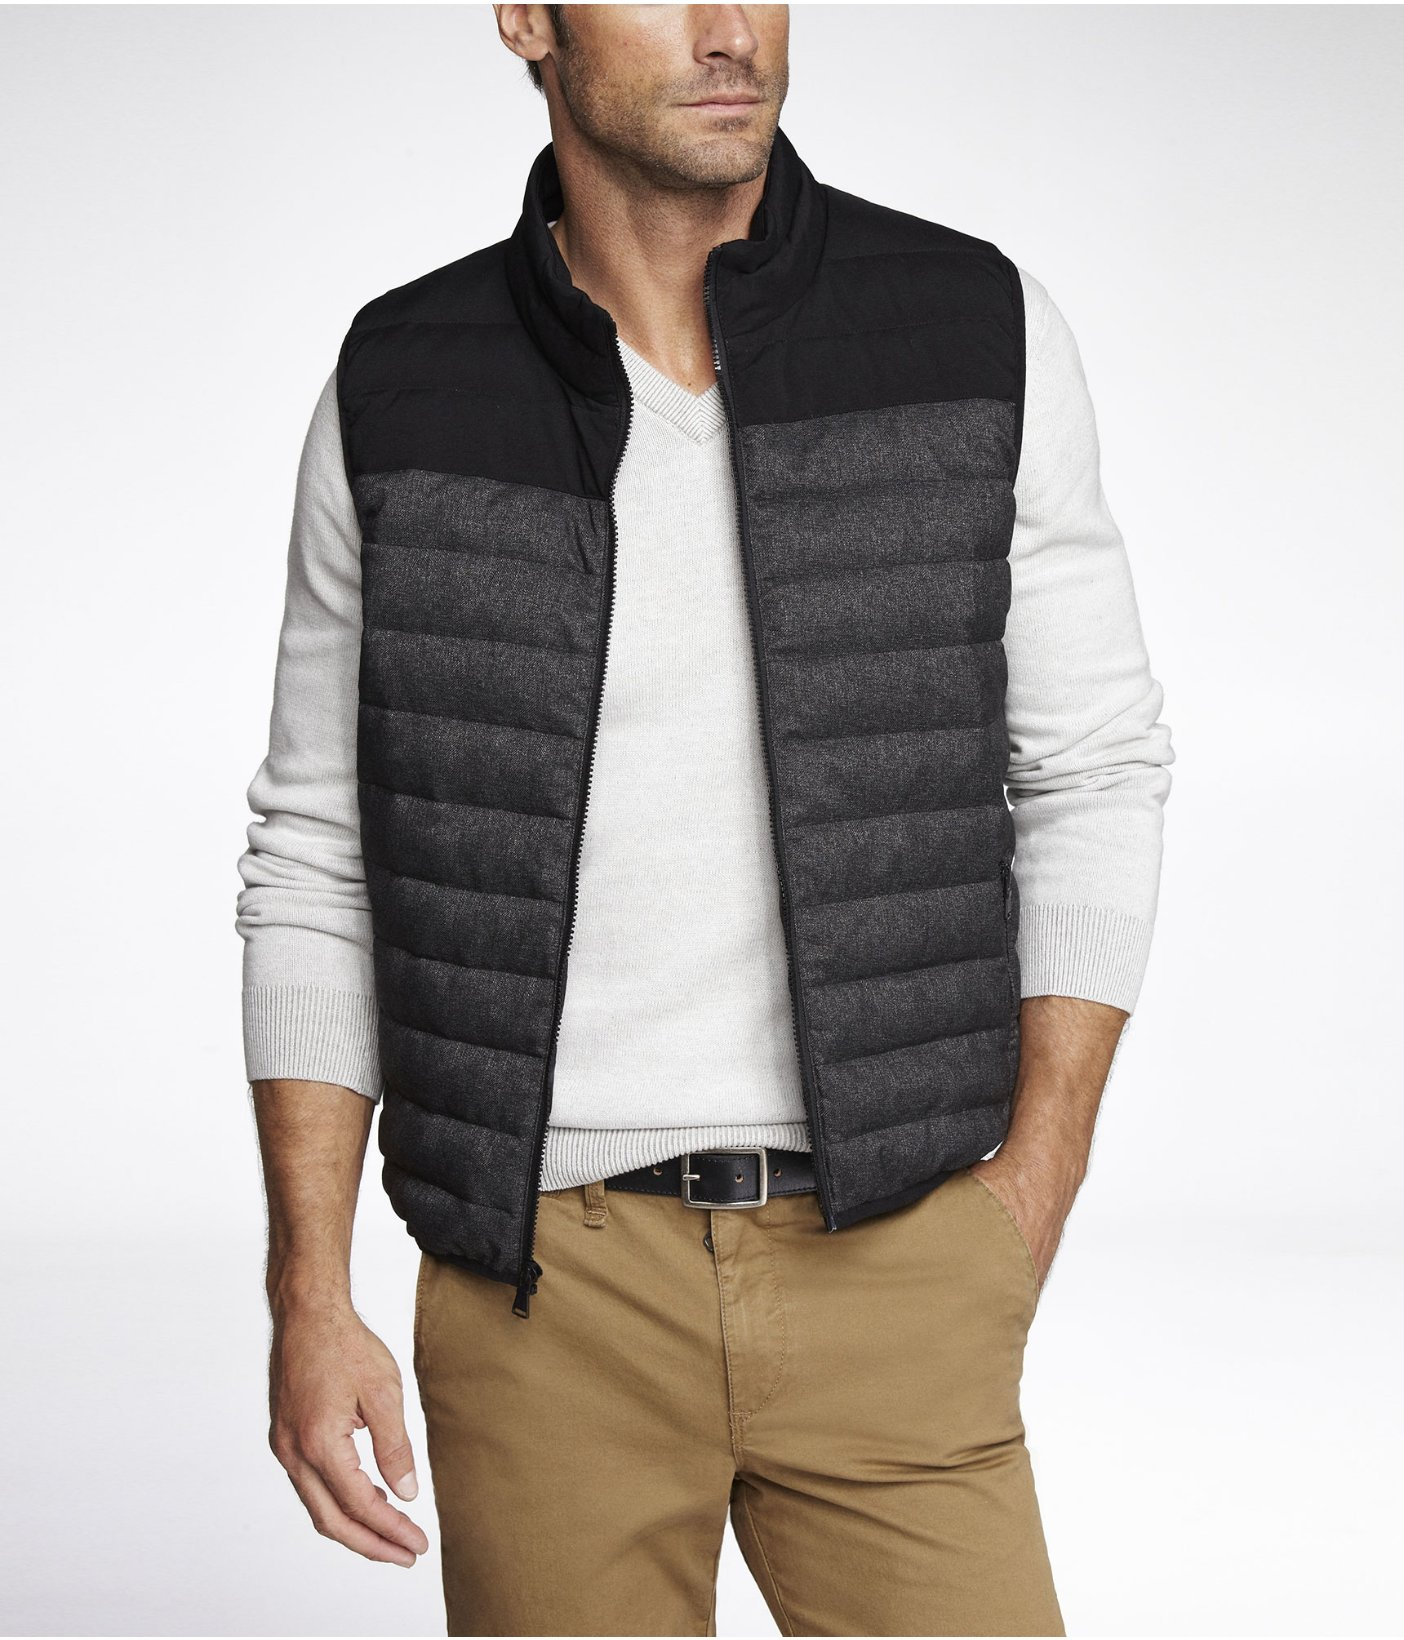 Men's Fall Fashion Tips to Remember